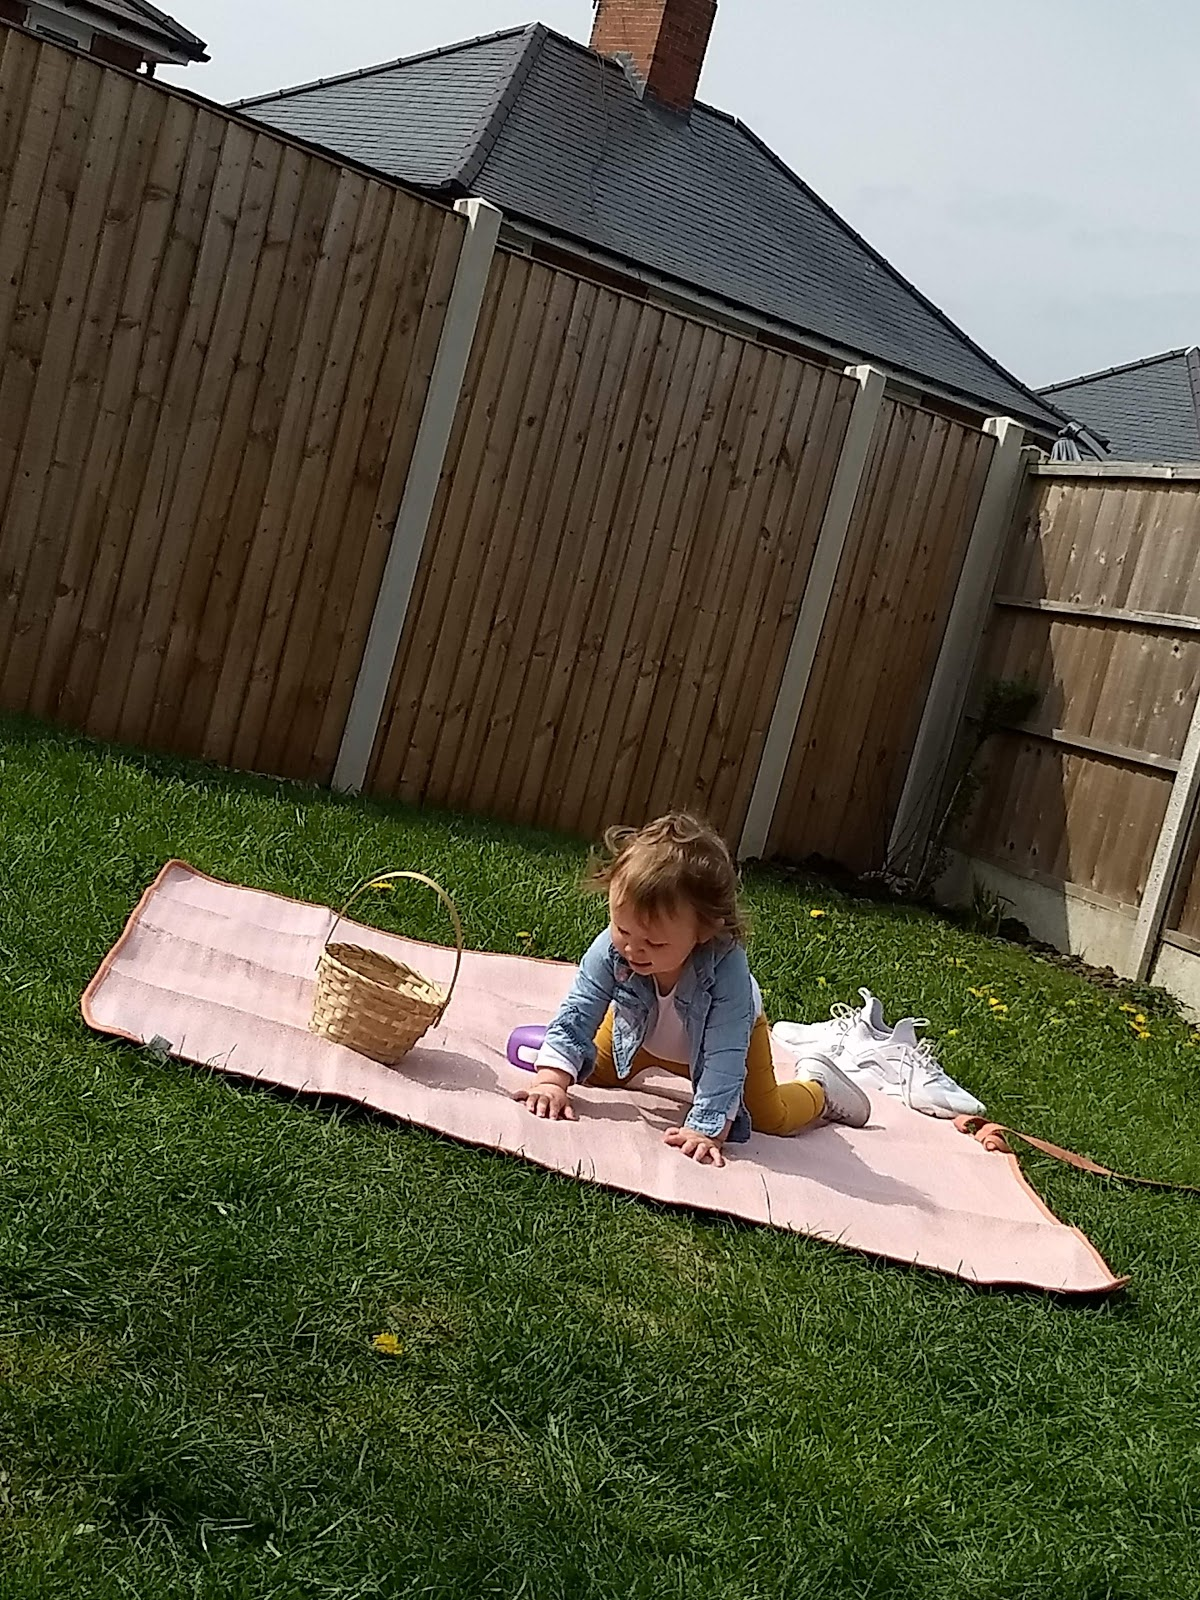 Toddler playing on picnic blanket.